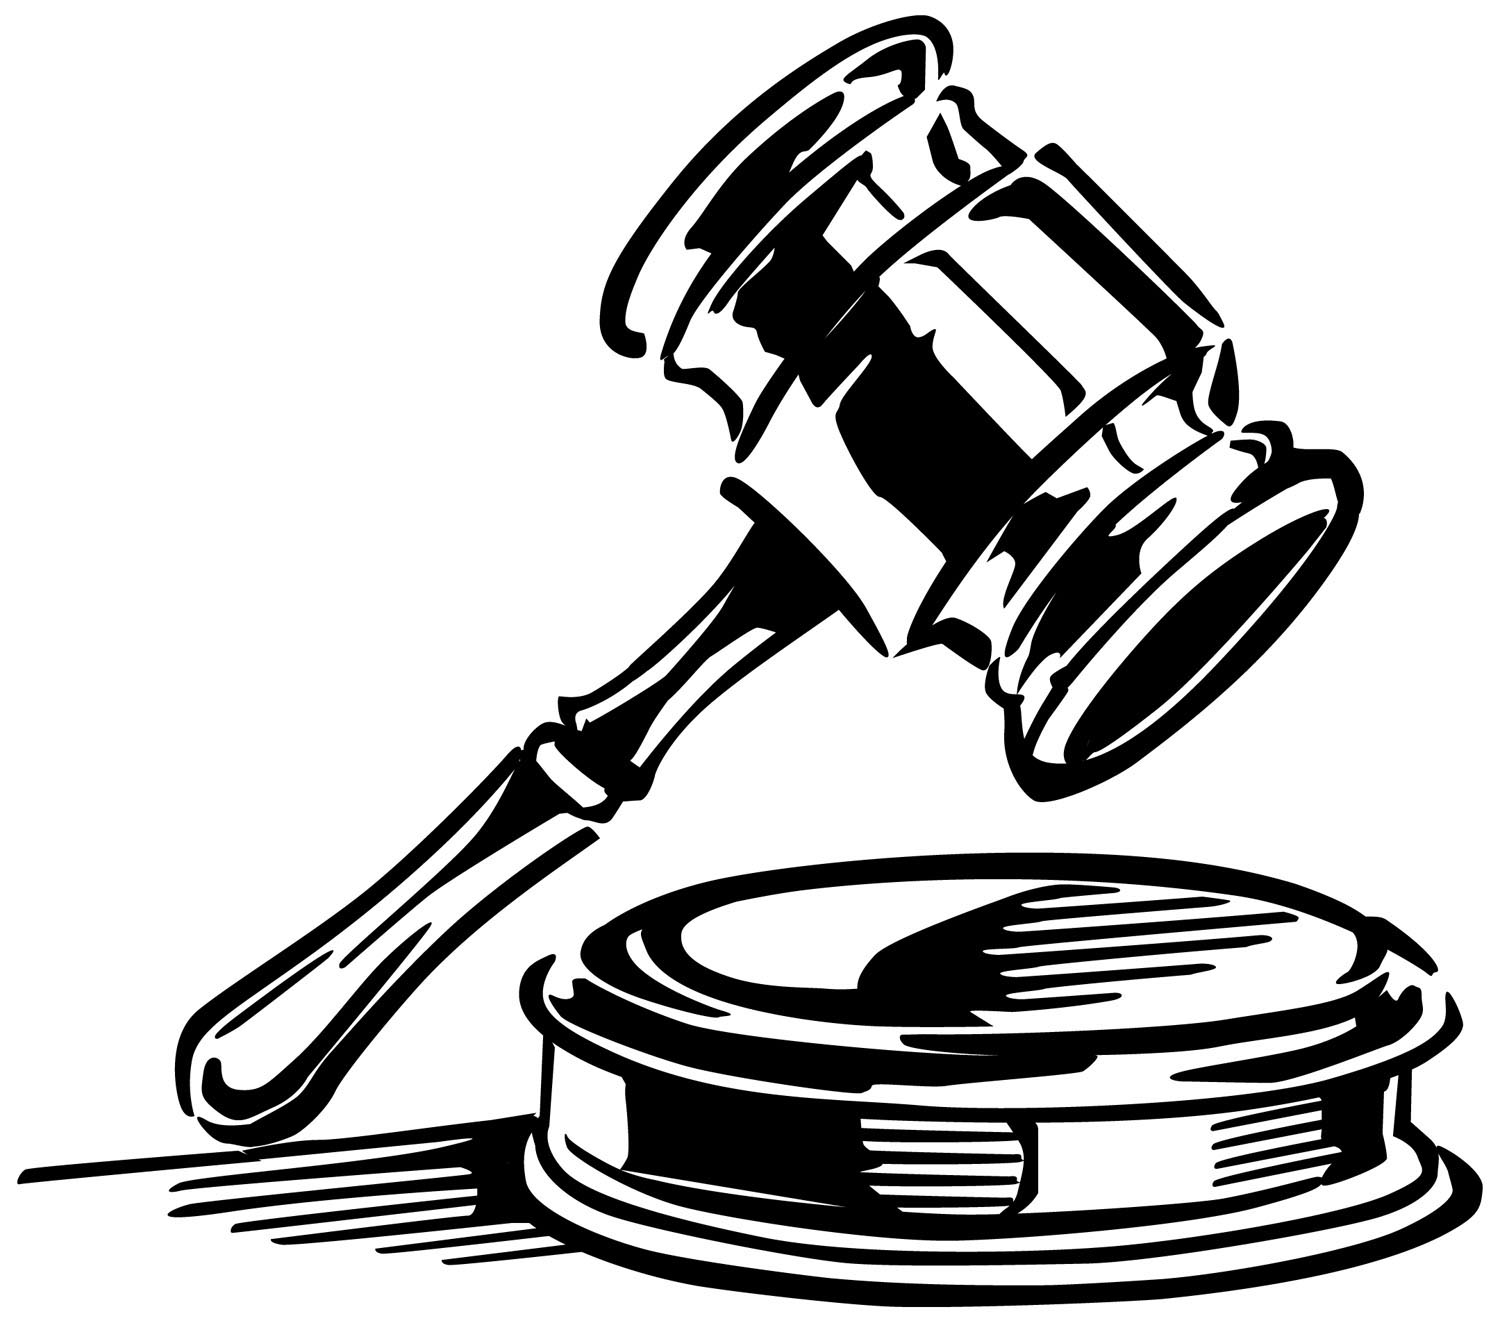 Gavel Black And White Clipart